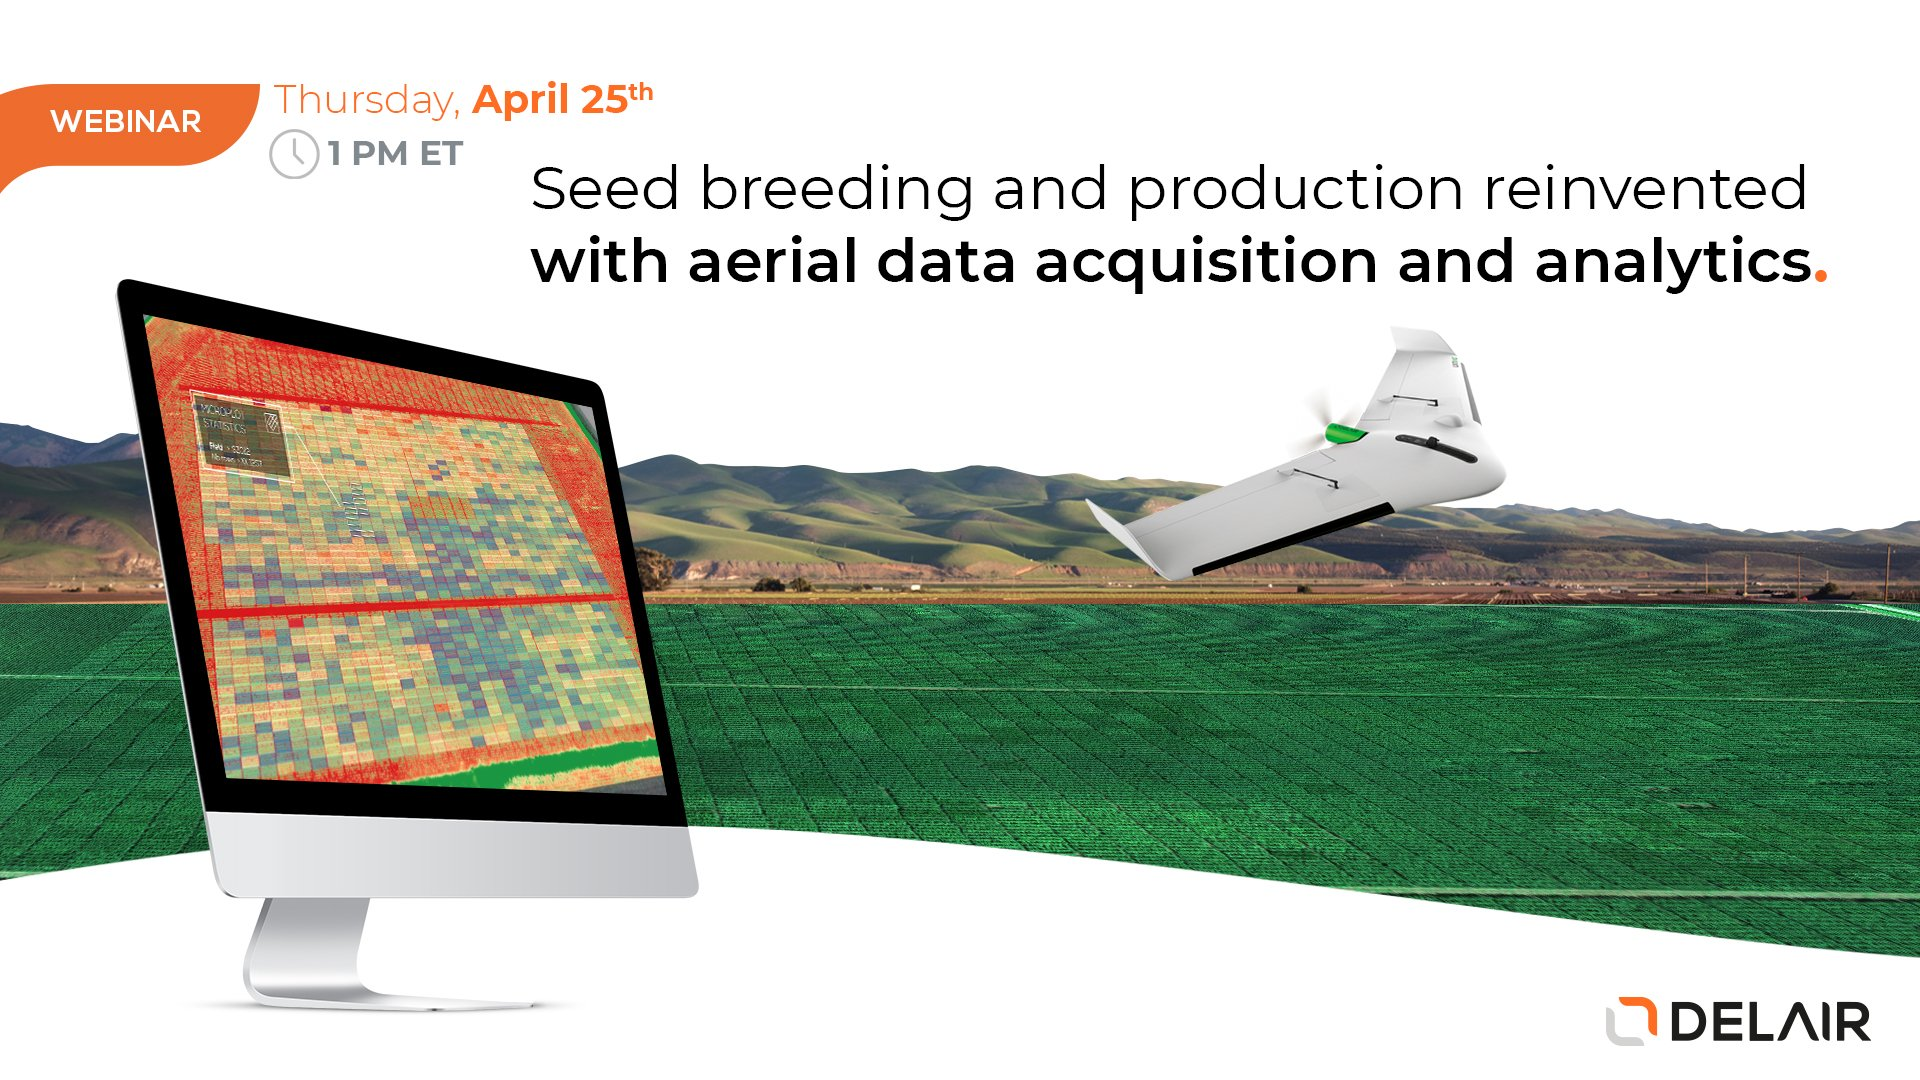 Boost your productivity by mapping large sites with a fixed-wing drone - Webinar with Seilier Instrument in Midwest